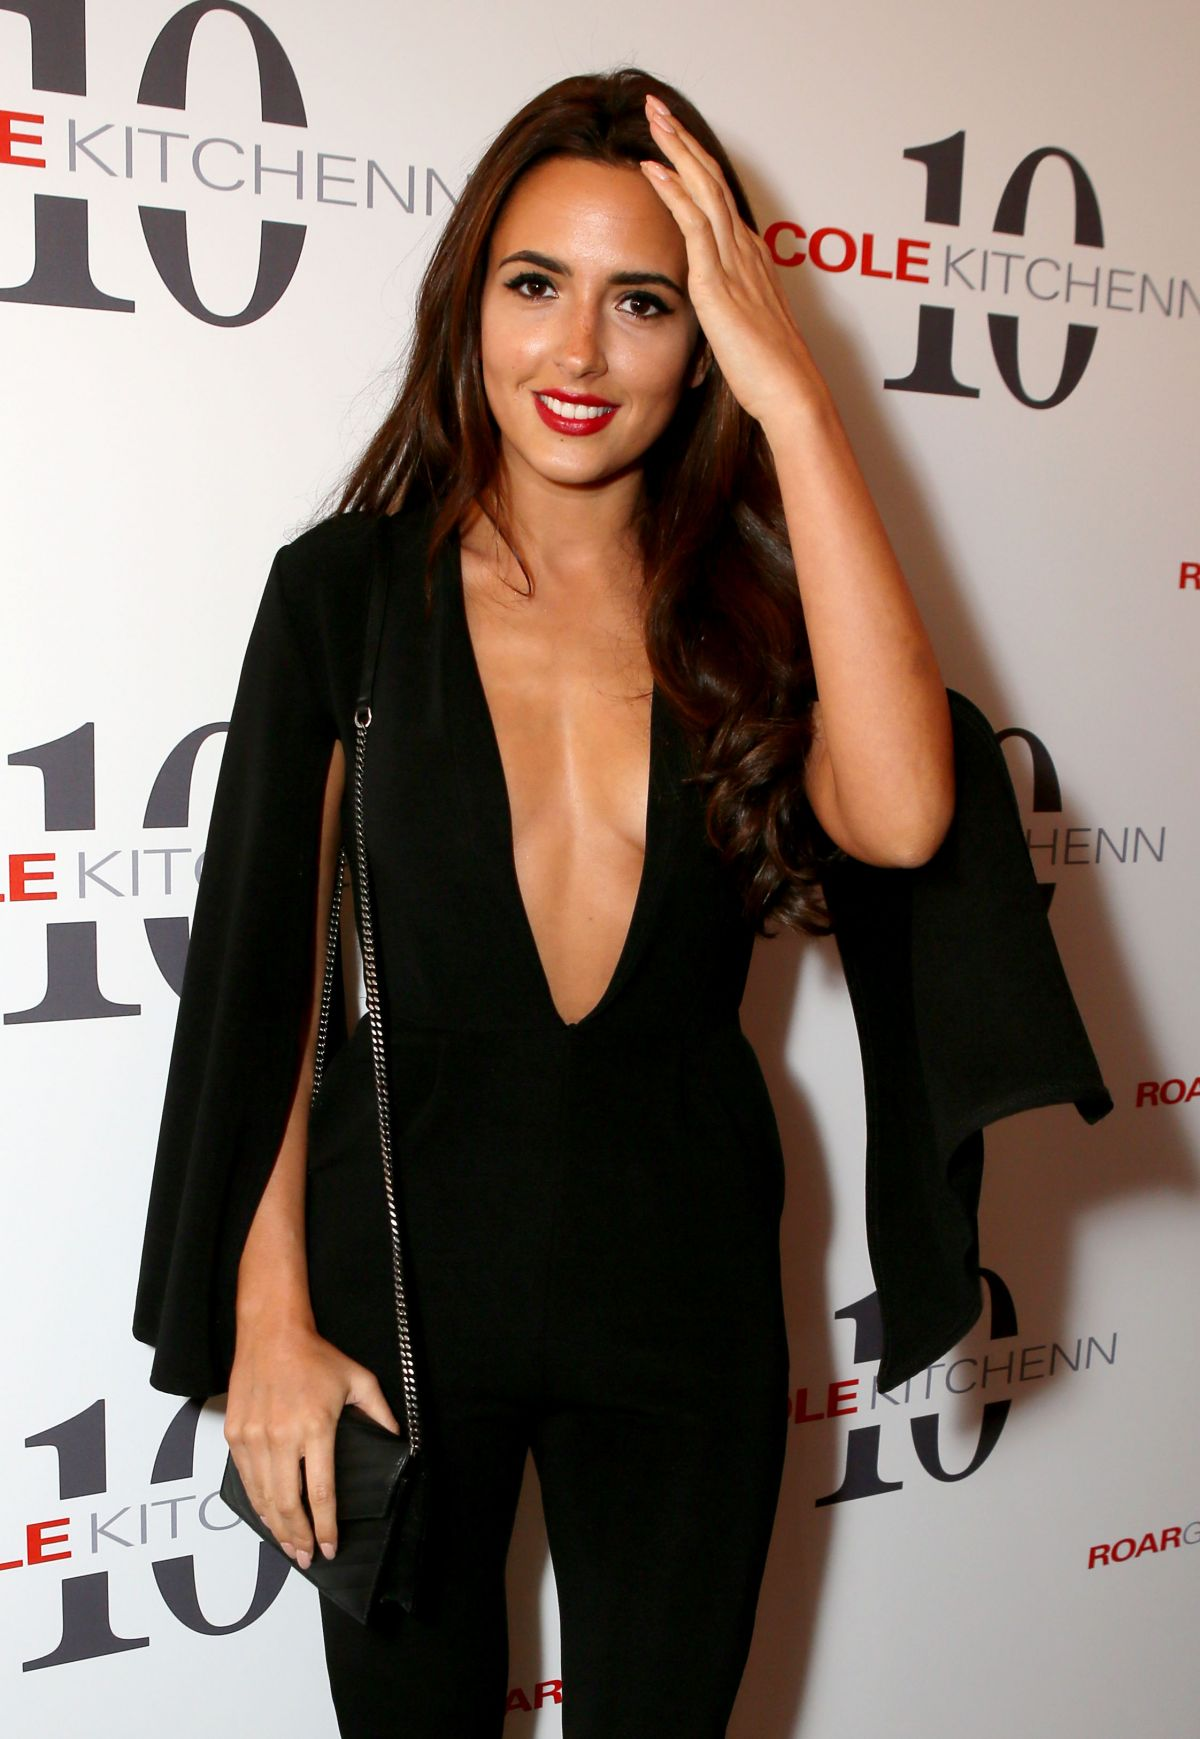 NADIA FORDE at Party to Celebrate 10 Years of Cole Kitchenn Personal Management in London 05/05/2016